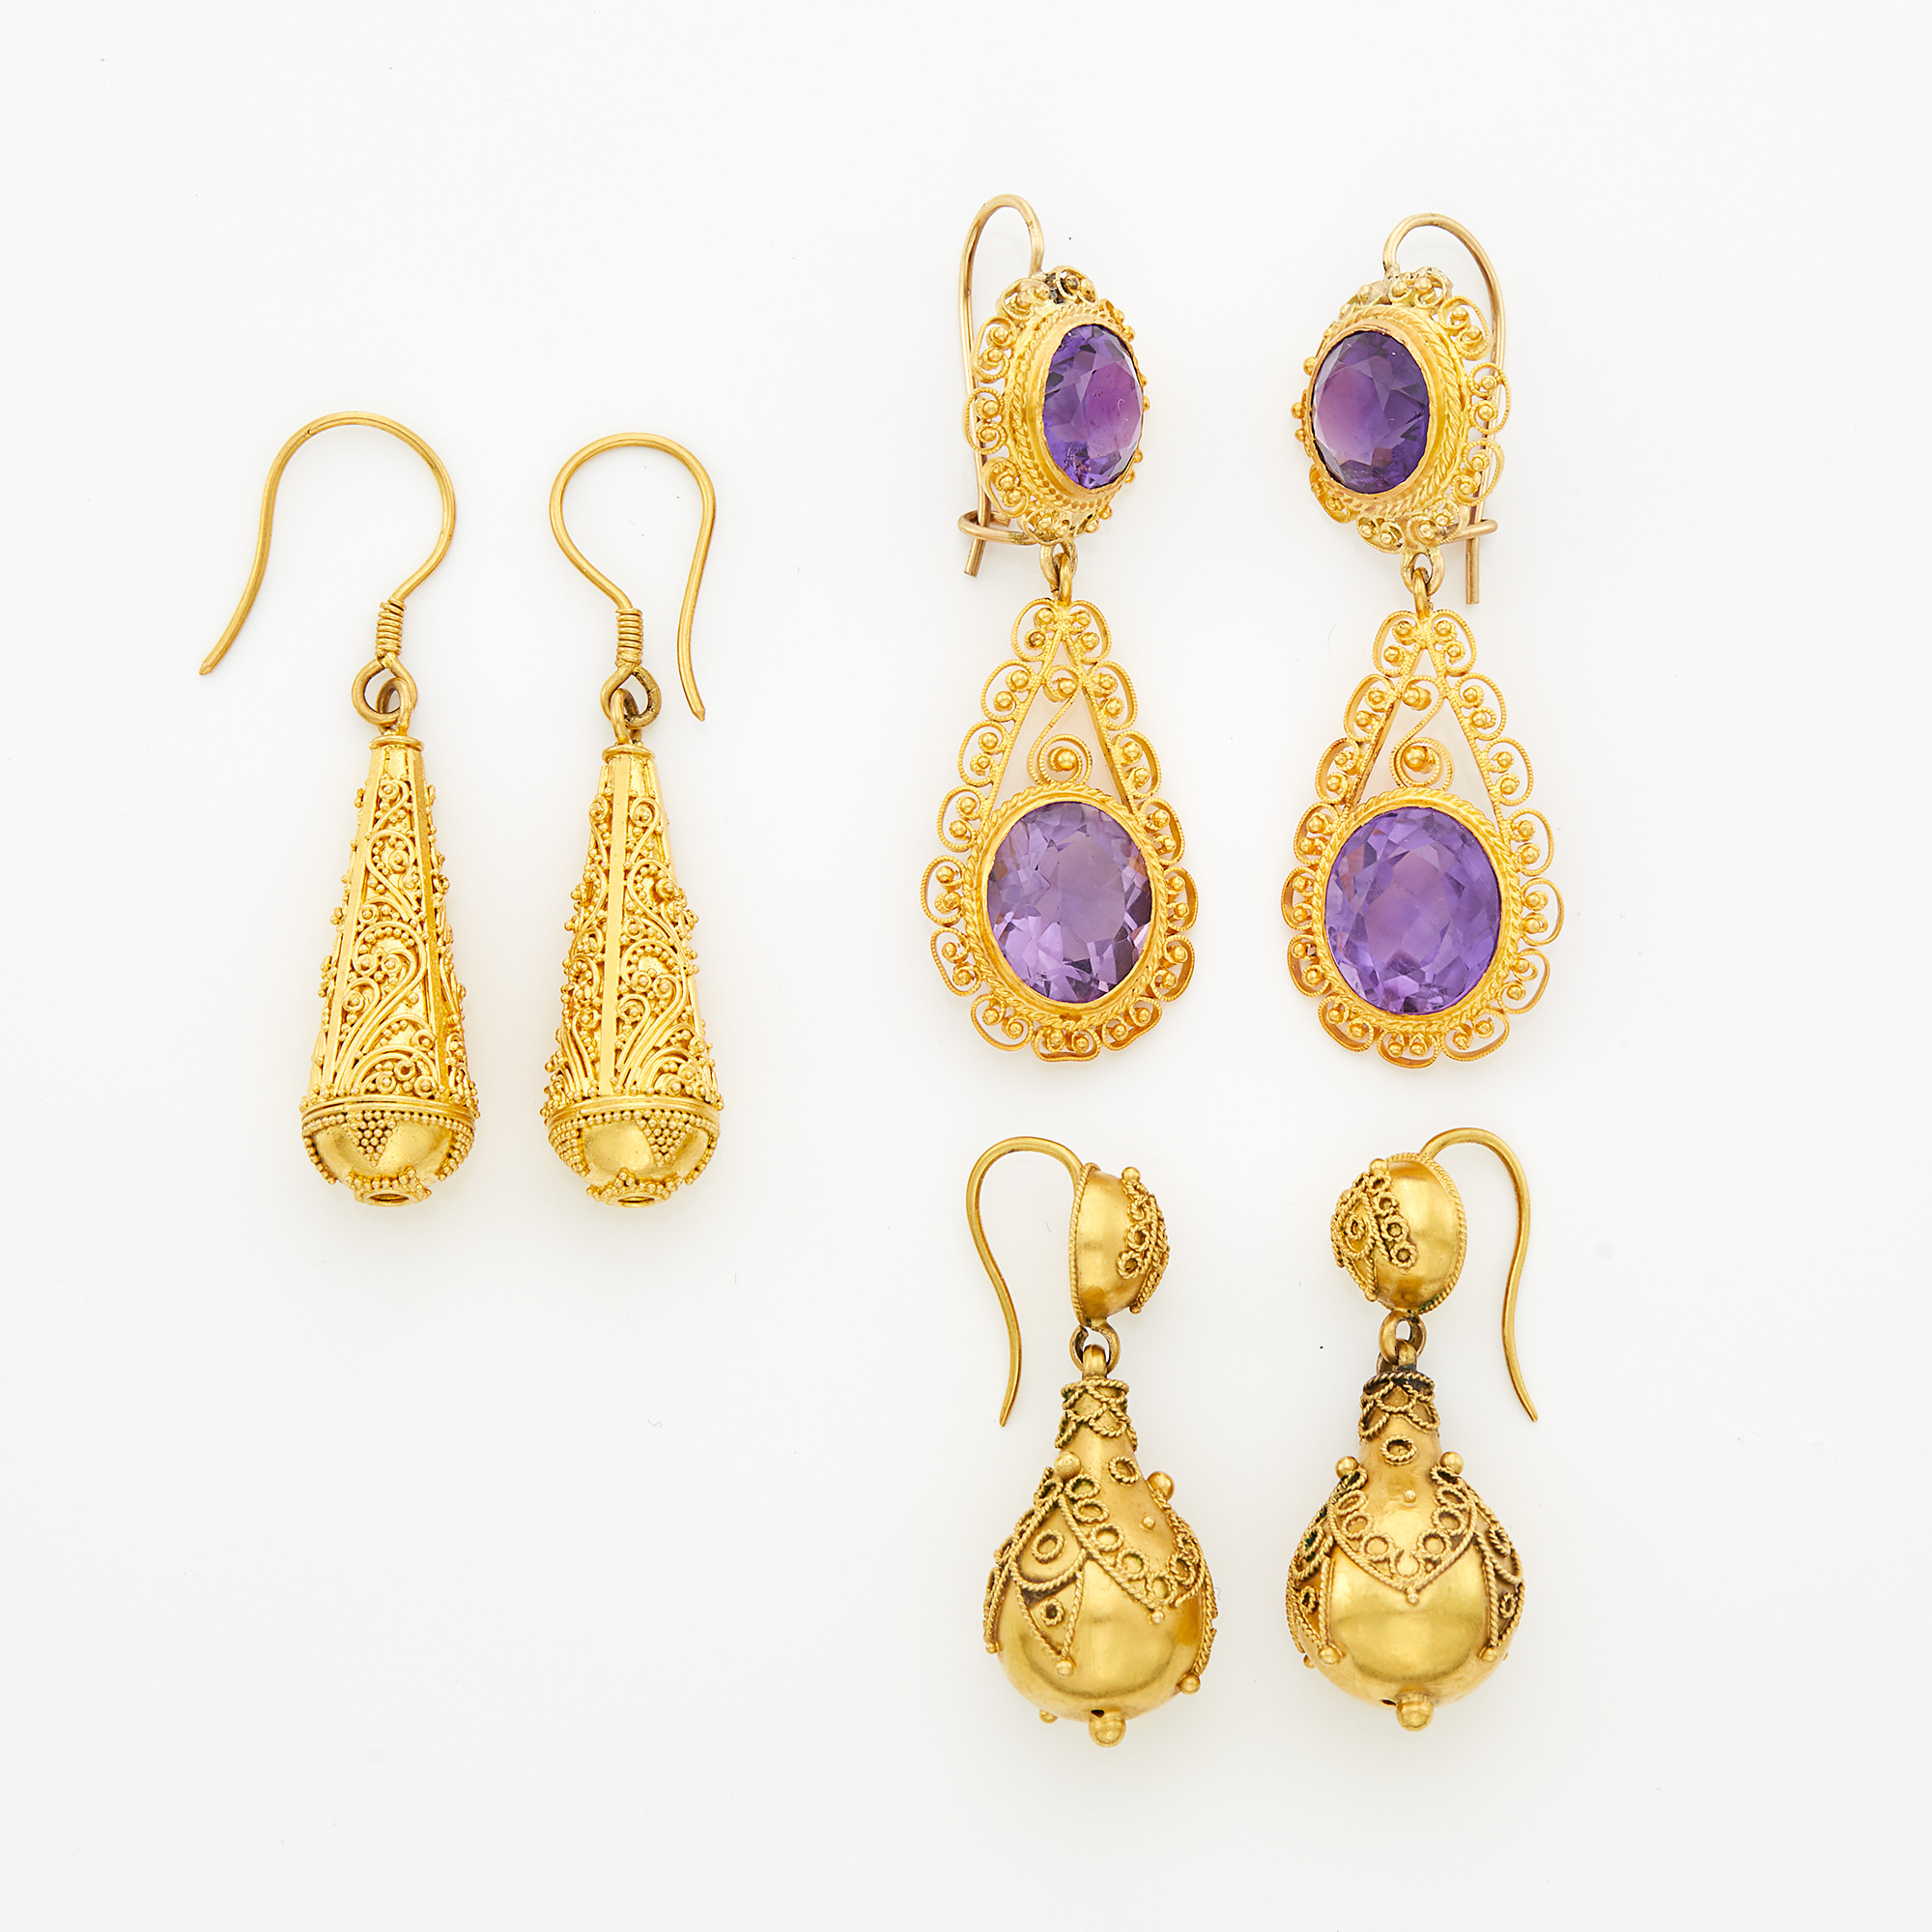 Lot image - Three Pairs of Gold and Amethyst Pendant-Earrings